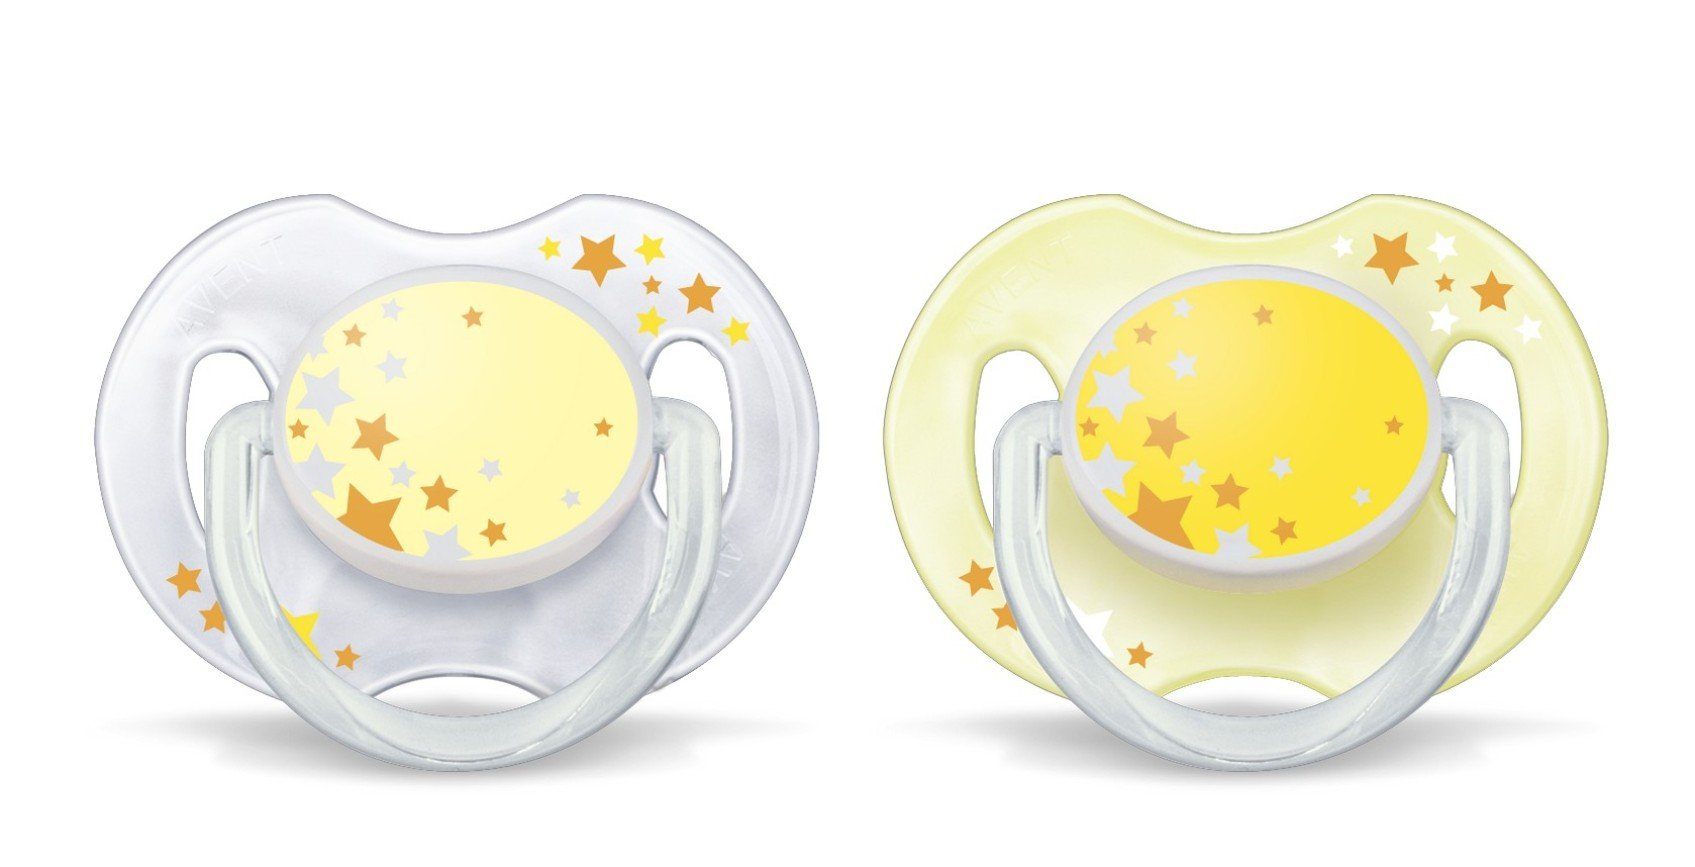 Philips AVENT SCF176/18 Glow in the Dark Night-Time Soother 0-6 Months (Colours May Vary), 2 Soothers 2